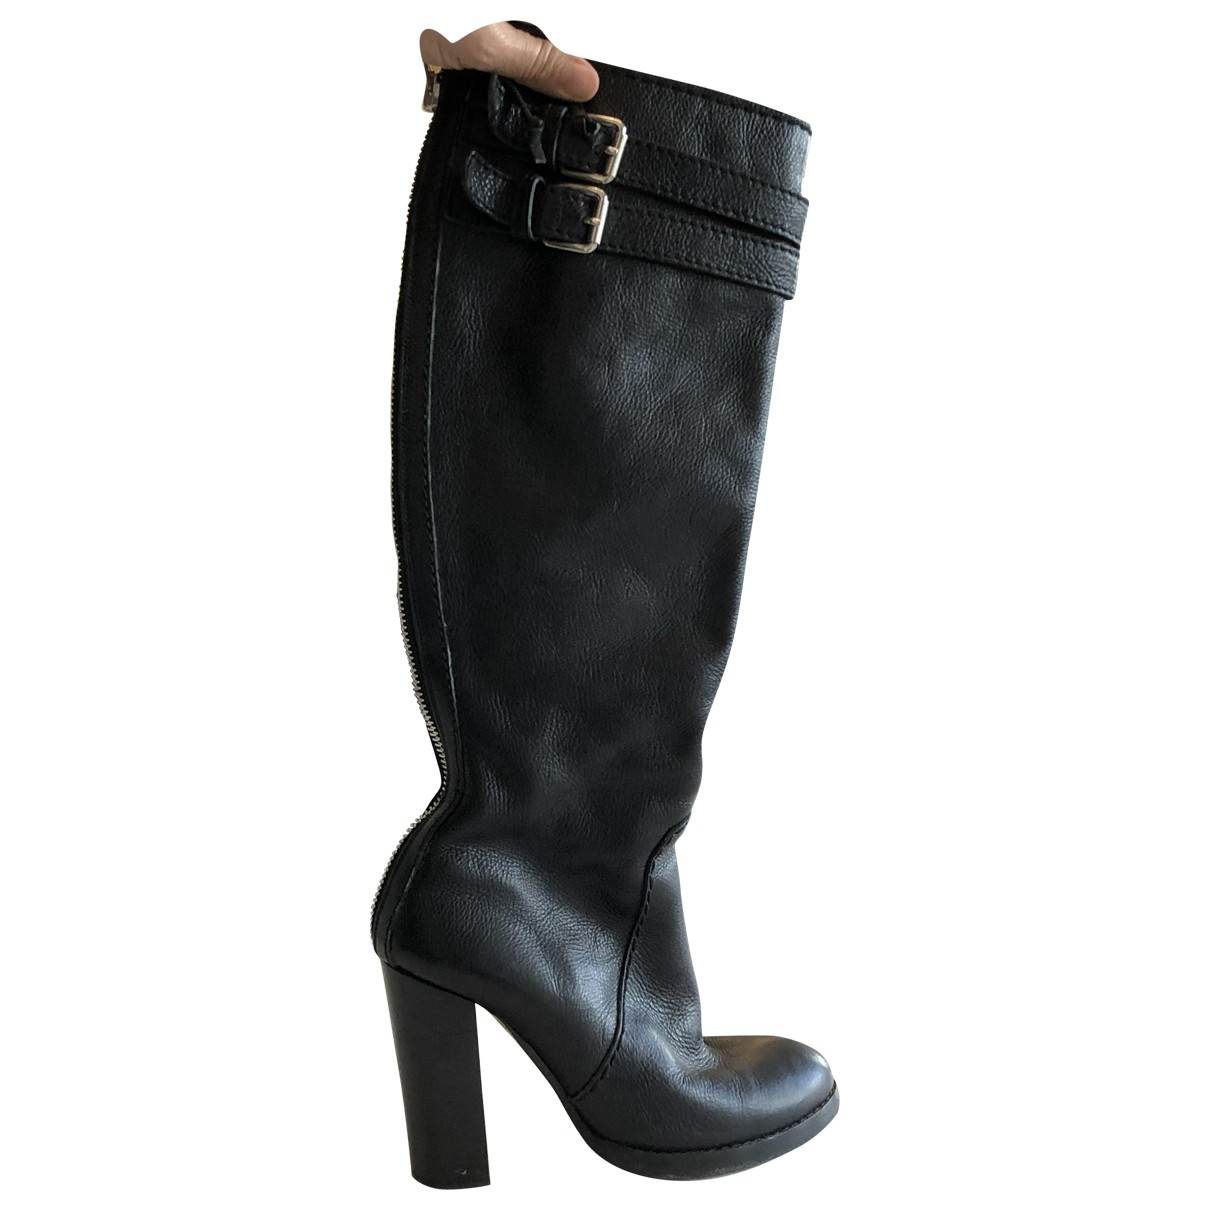 Chloé \N Black Leather Boots for Women 38 EU